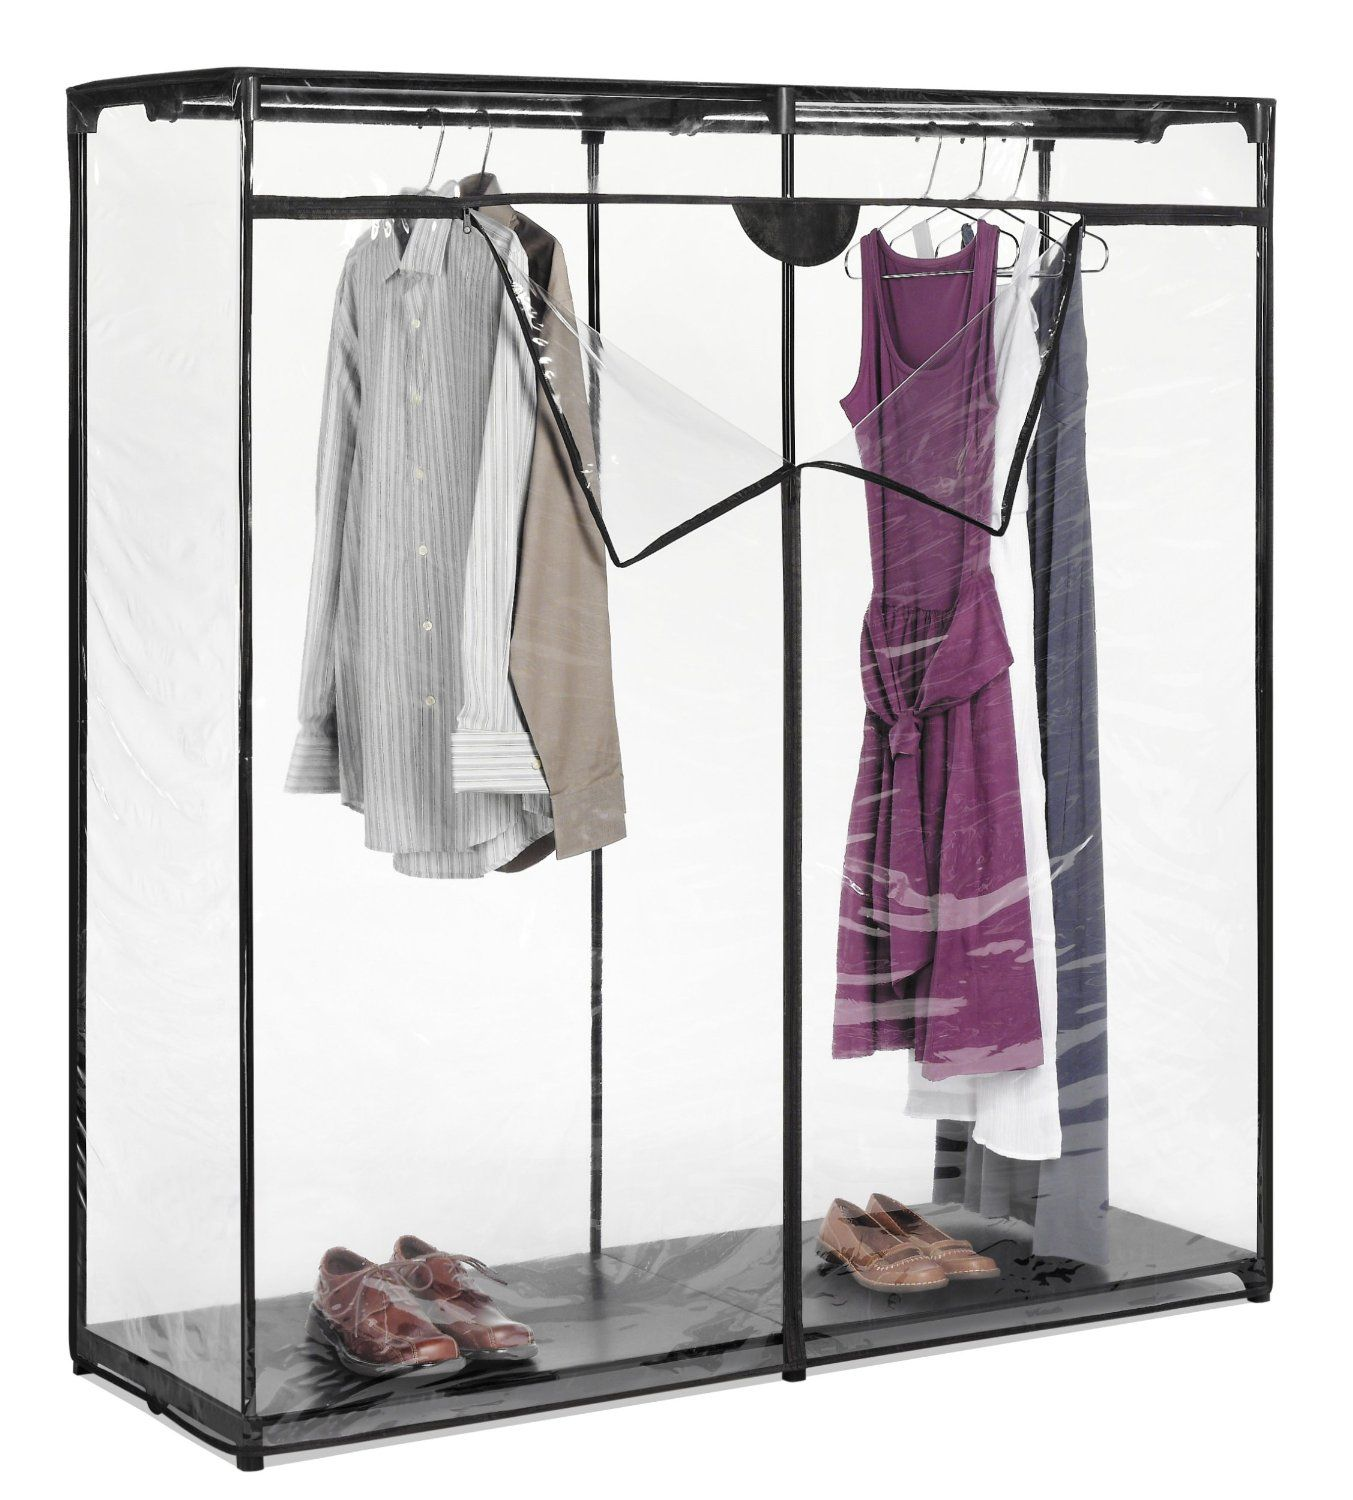 1000+ Images About Free Standing Closet Rack On Pinterest | Shelves,  Garment Racks And